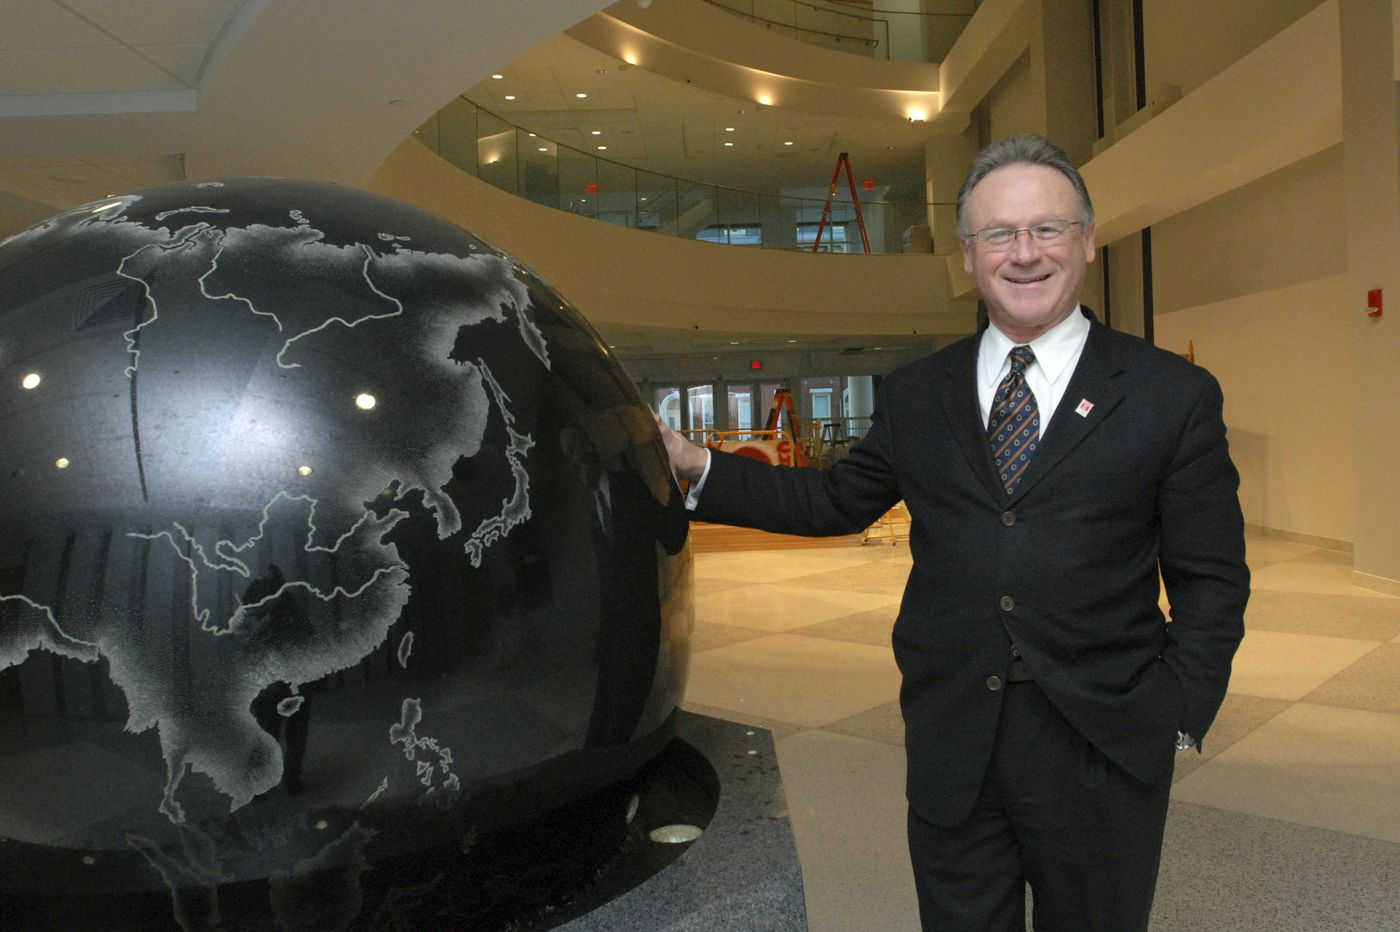 Ousted Temple dean Moshe Porat was a rainmaker for the business school